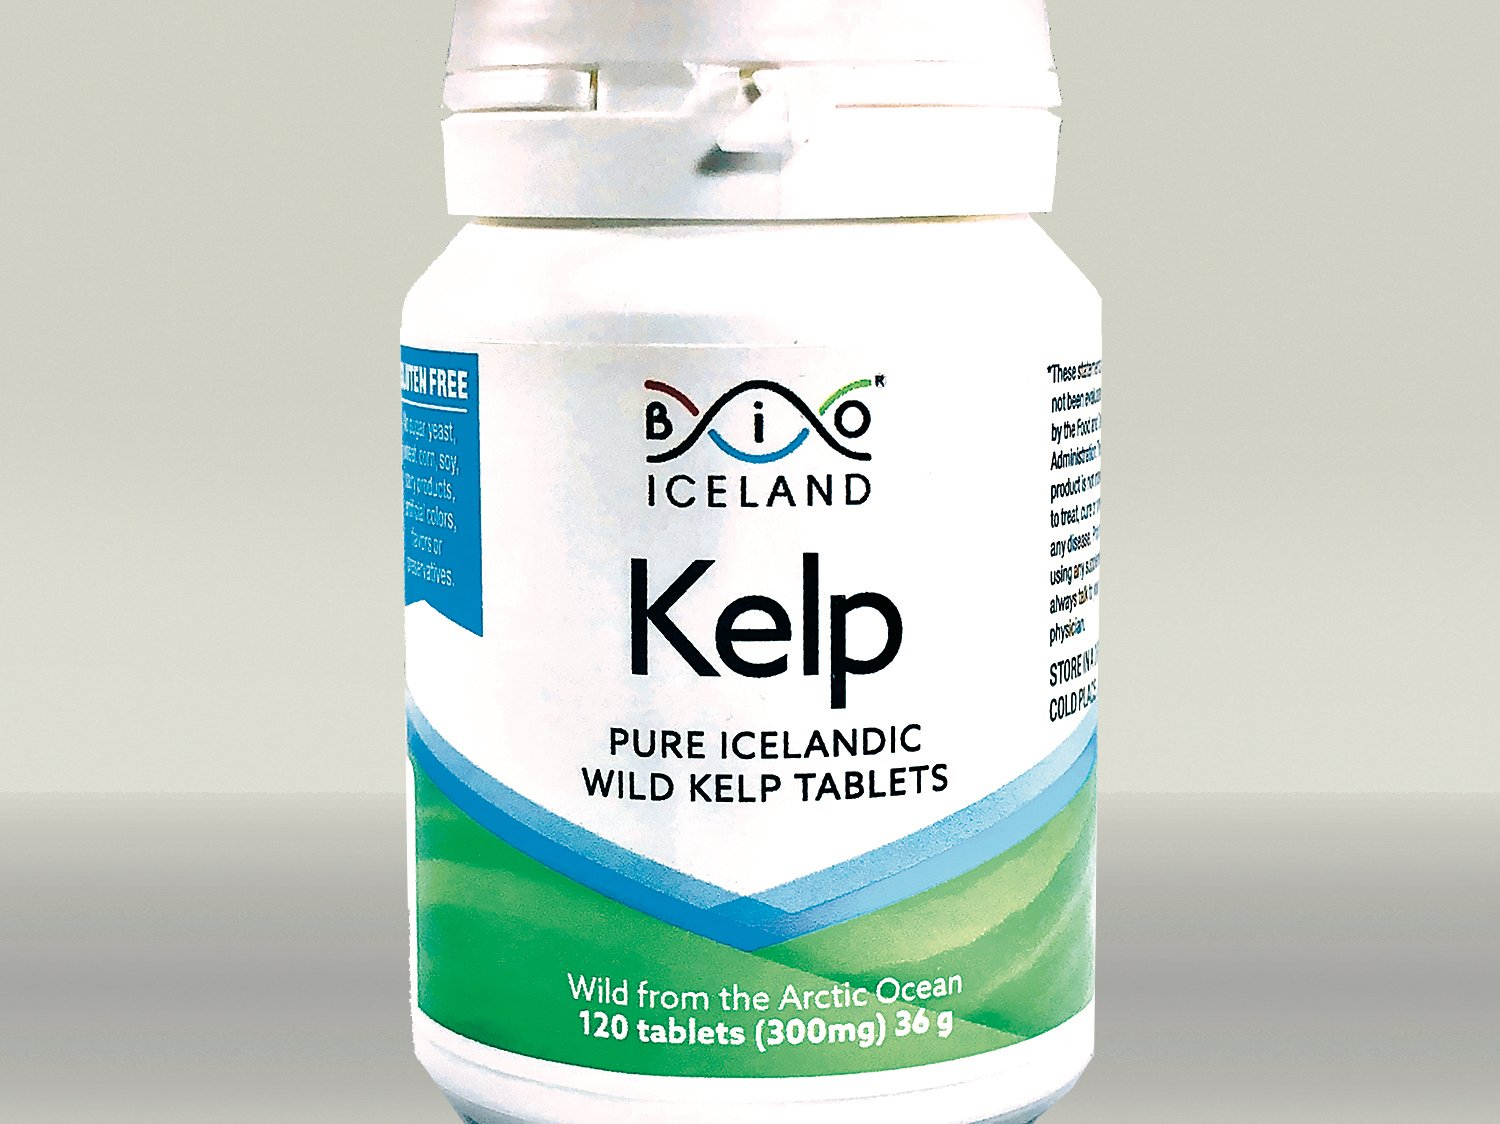 Wild Arctic Icelandic Whole Food Iodine from Organic Kelp. Thyroid Support Supplement. Supports a Healthy Metabolism, Energy and Immune Boost - 120 Vegan Tablets 300 MG